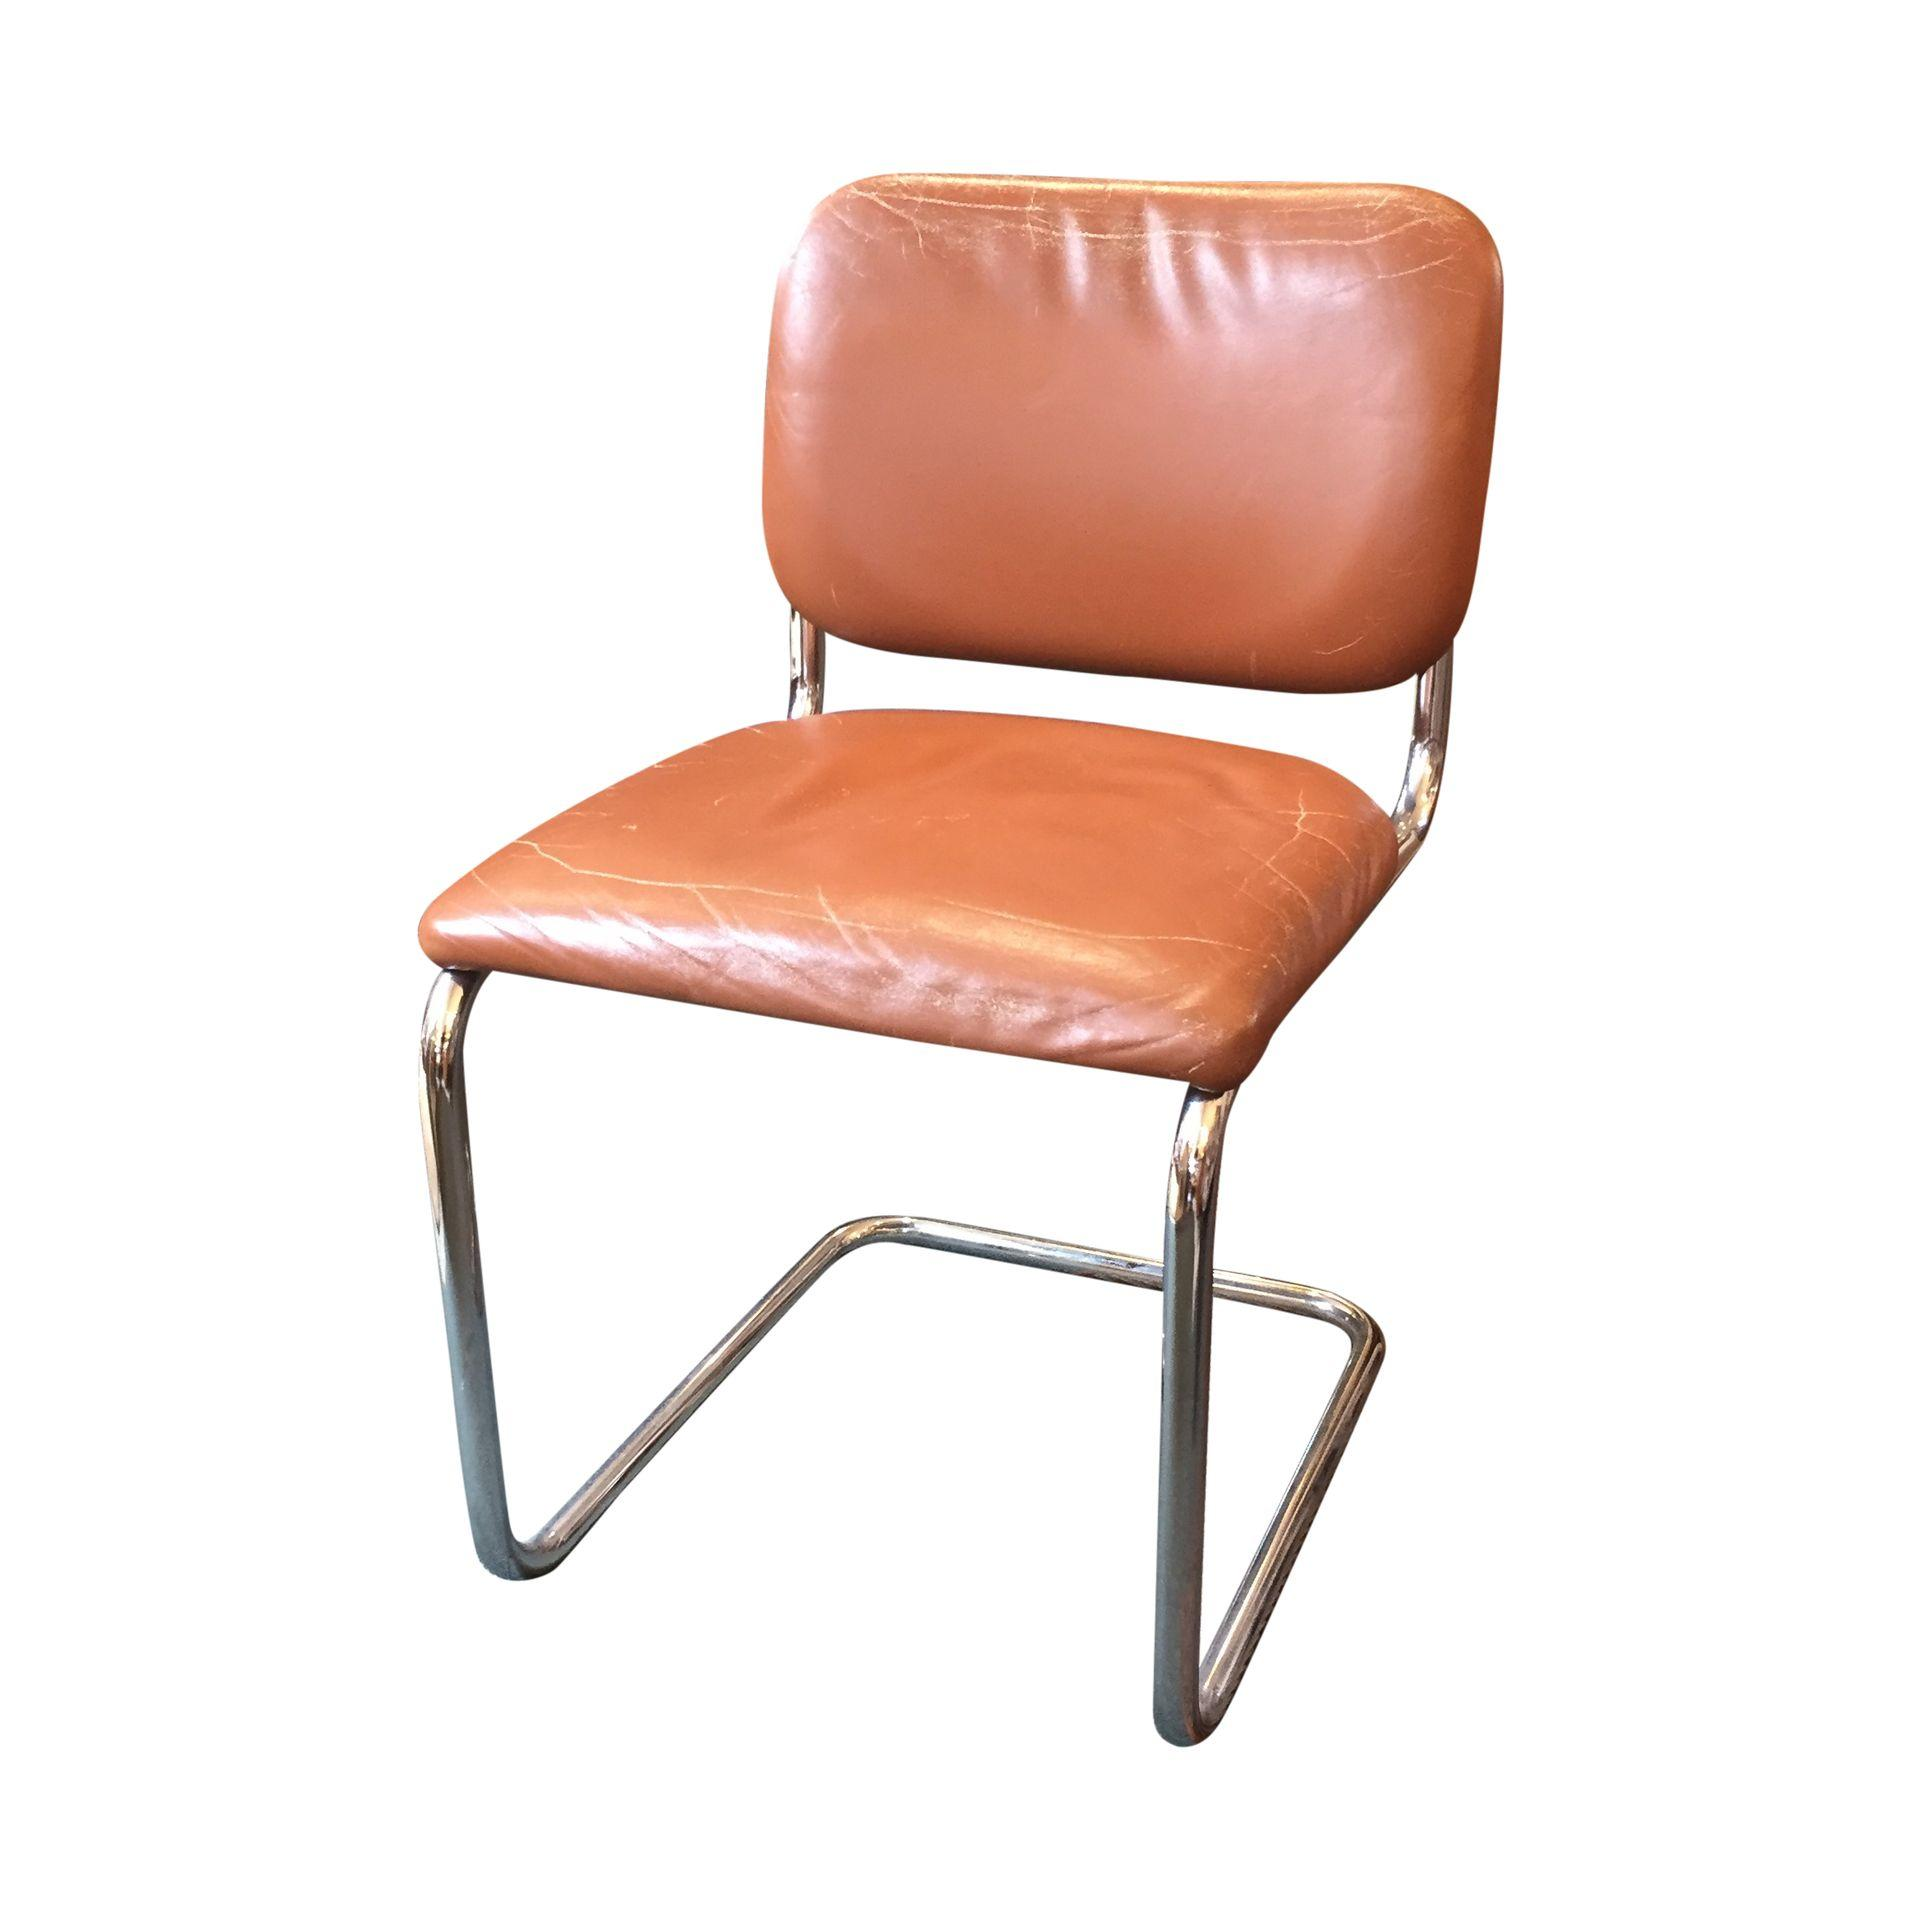 set of 4 chairs engraved rocking chair marcel breuer jpg